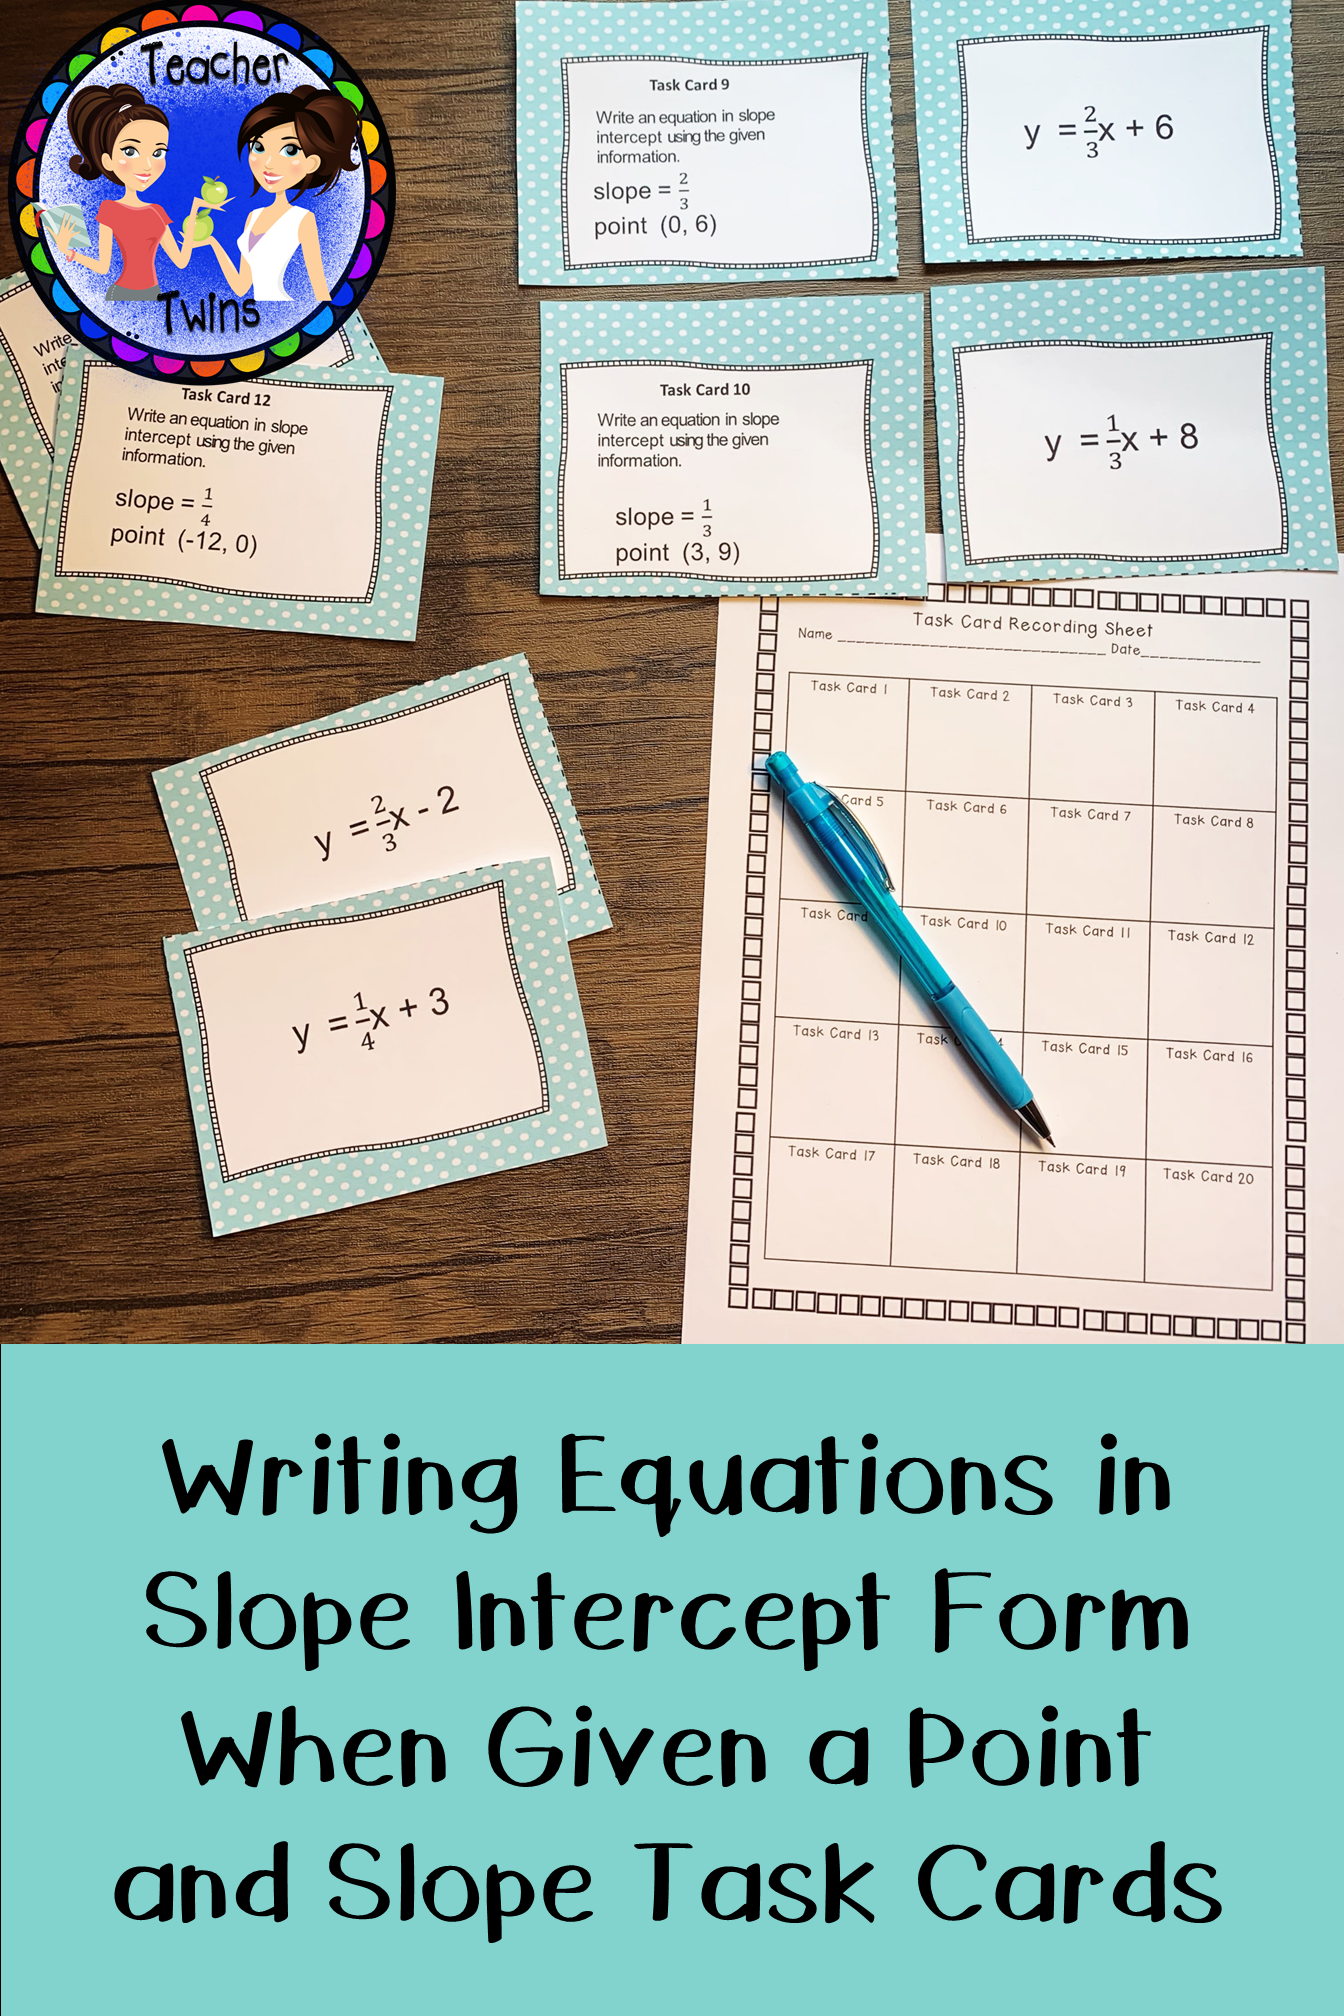 Writing Equations In Slope Intercept Form When Given Point